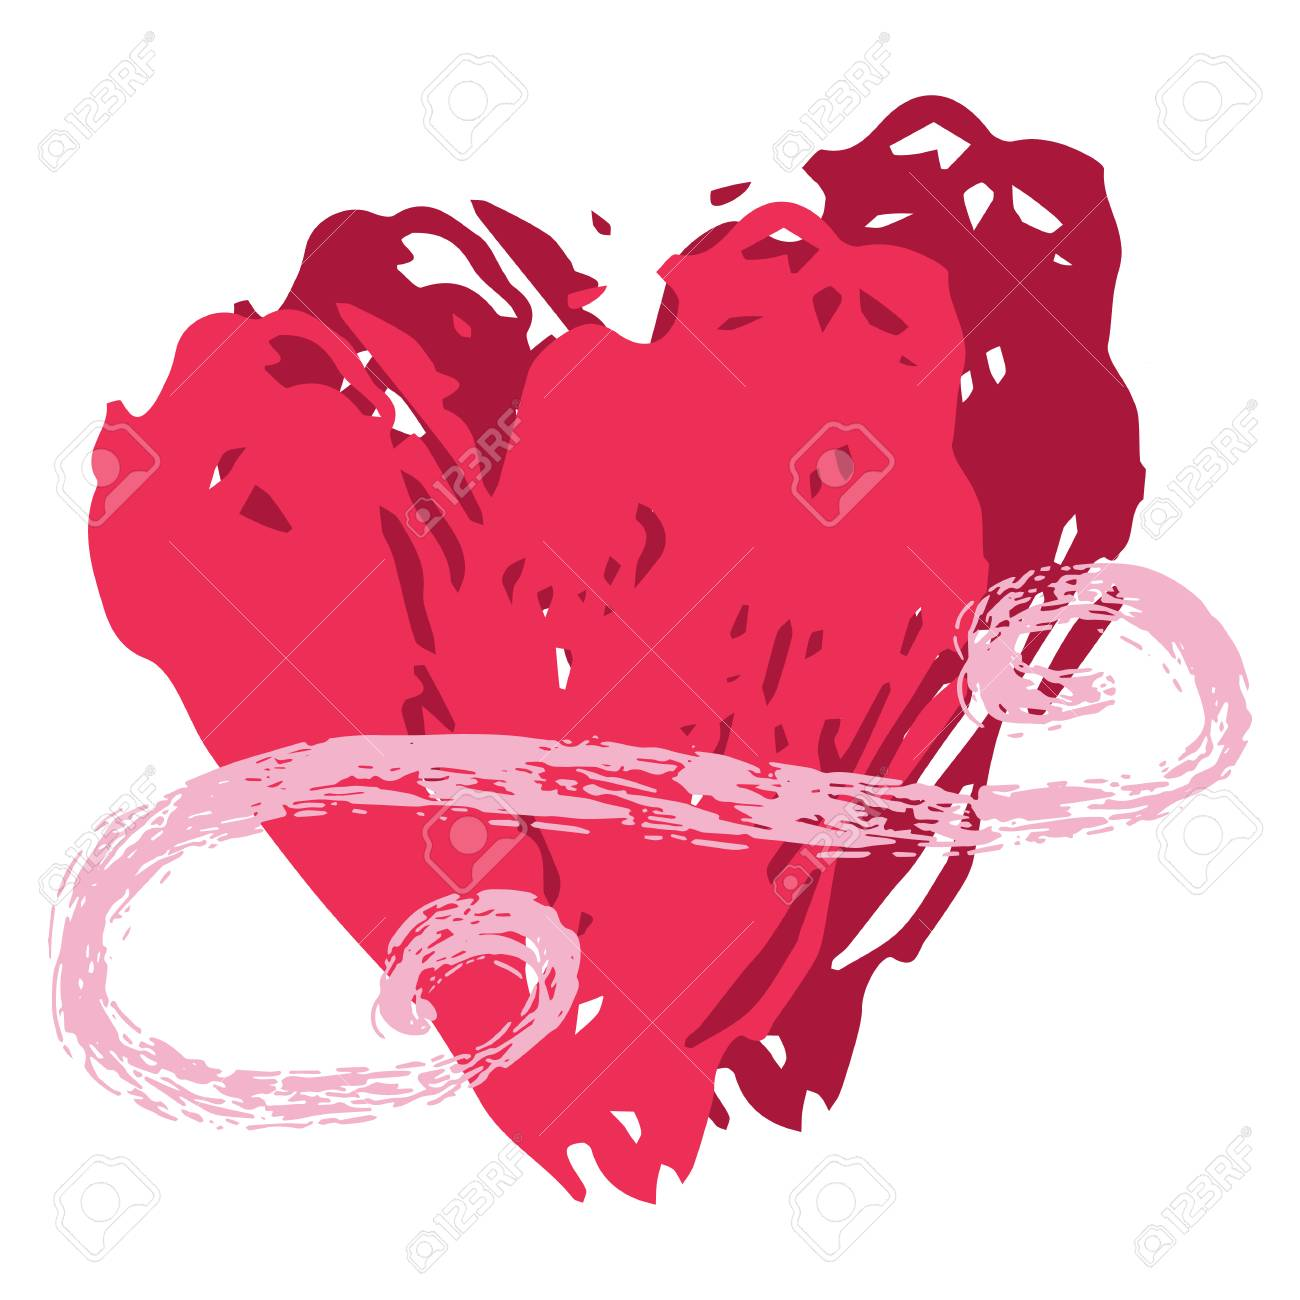 Brush Stroke Red Vector 2 Love Hearts Entwined Flourish Texture.